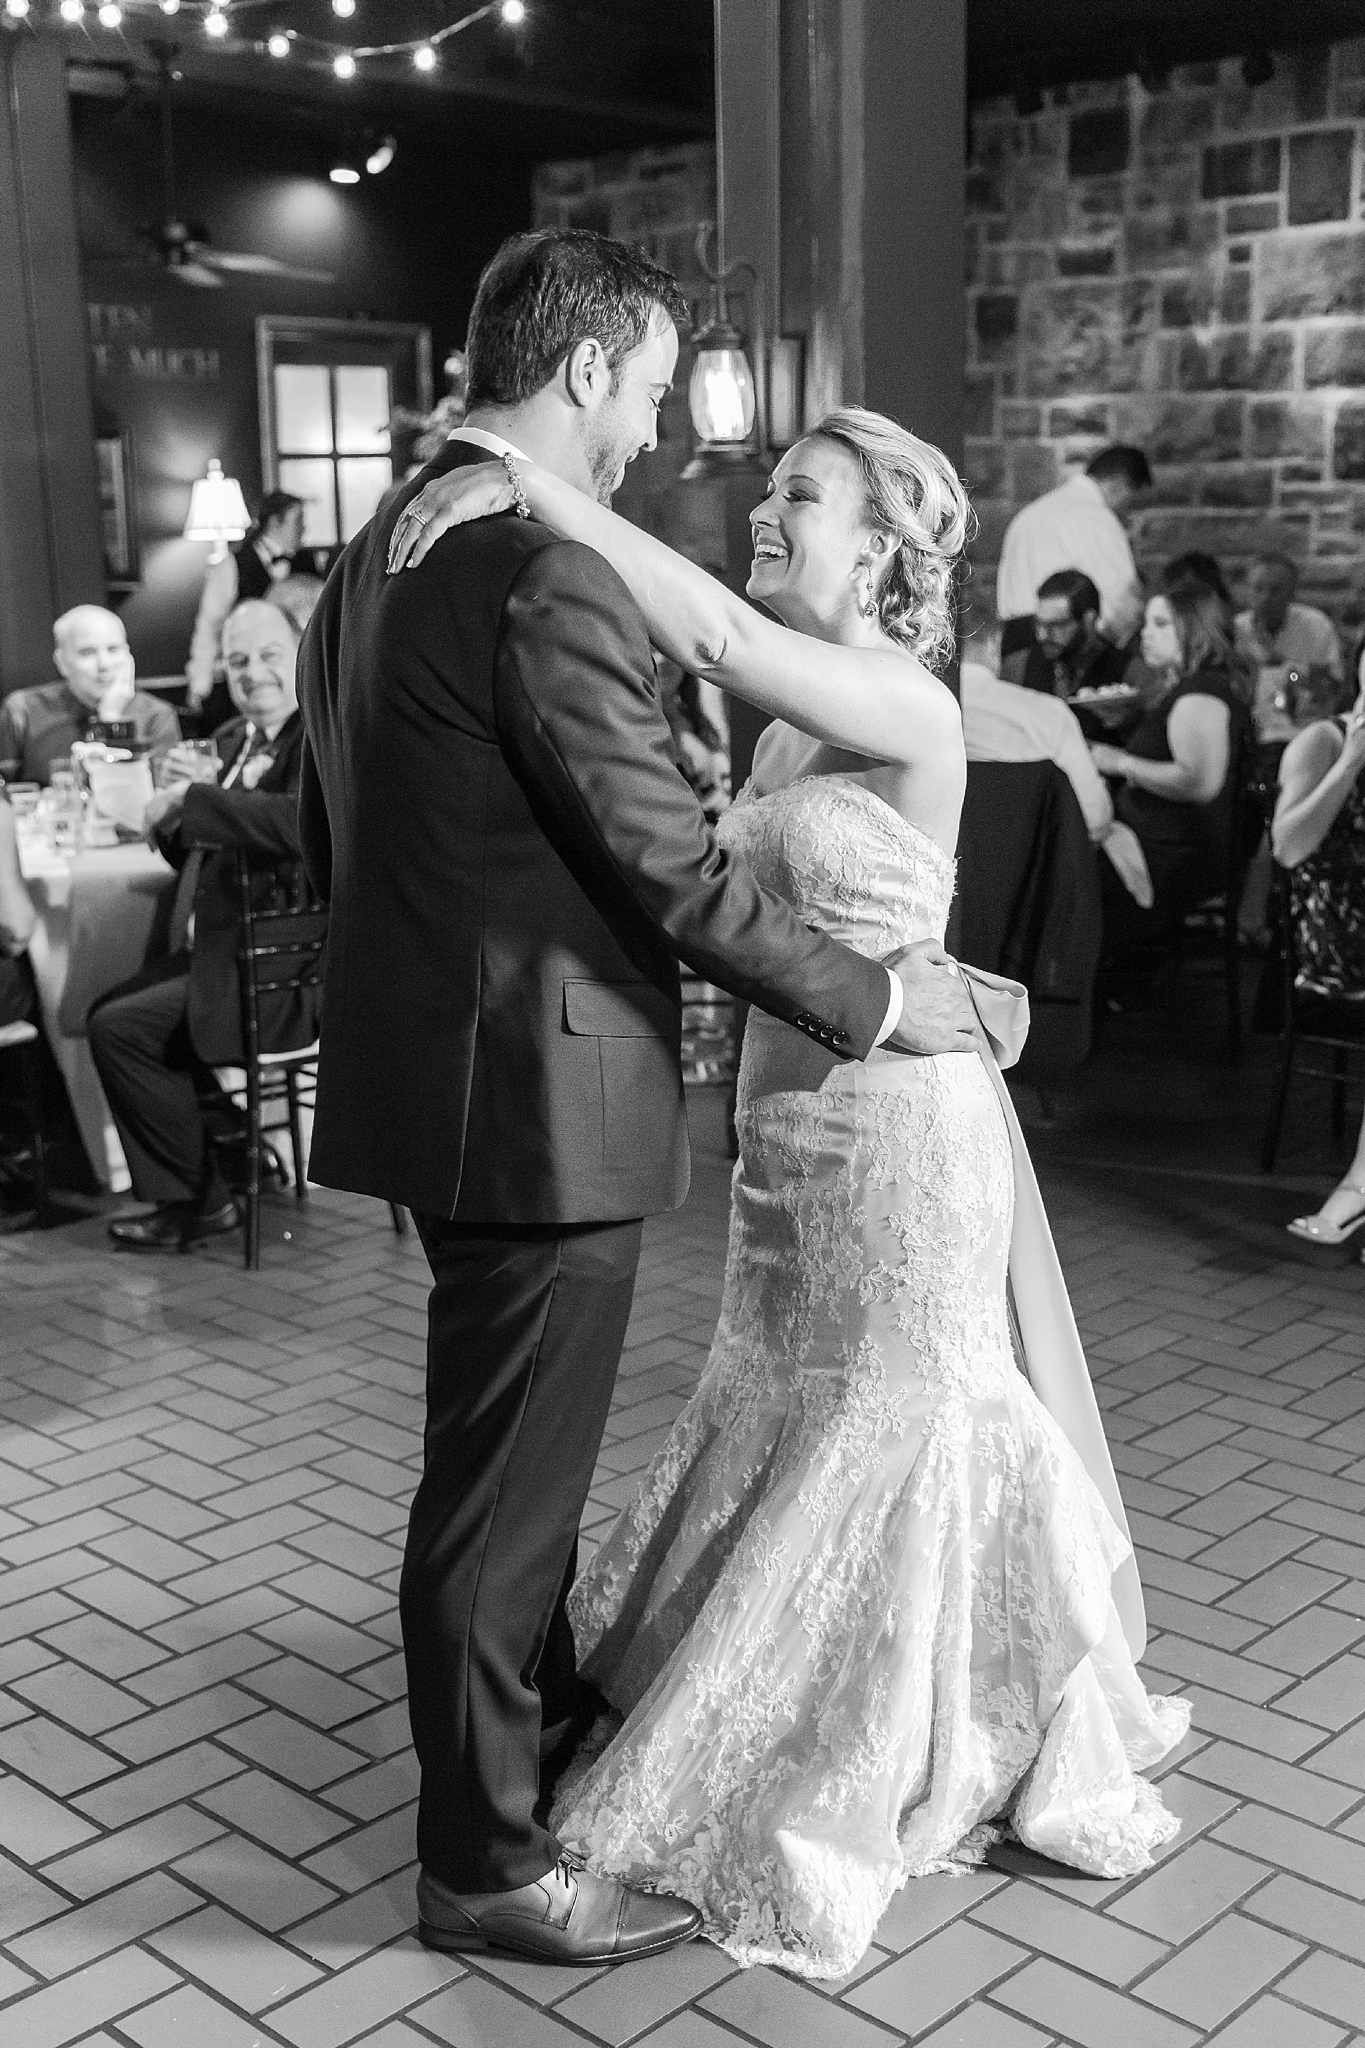 joyful-romantic-modern-laid-back-wedding-photography-in-detroit-ann-arbor-northern-mi-and-chicago-by-courtney-carolyn-photography_0029.jpg